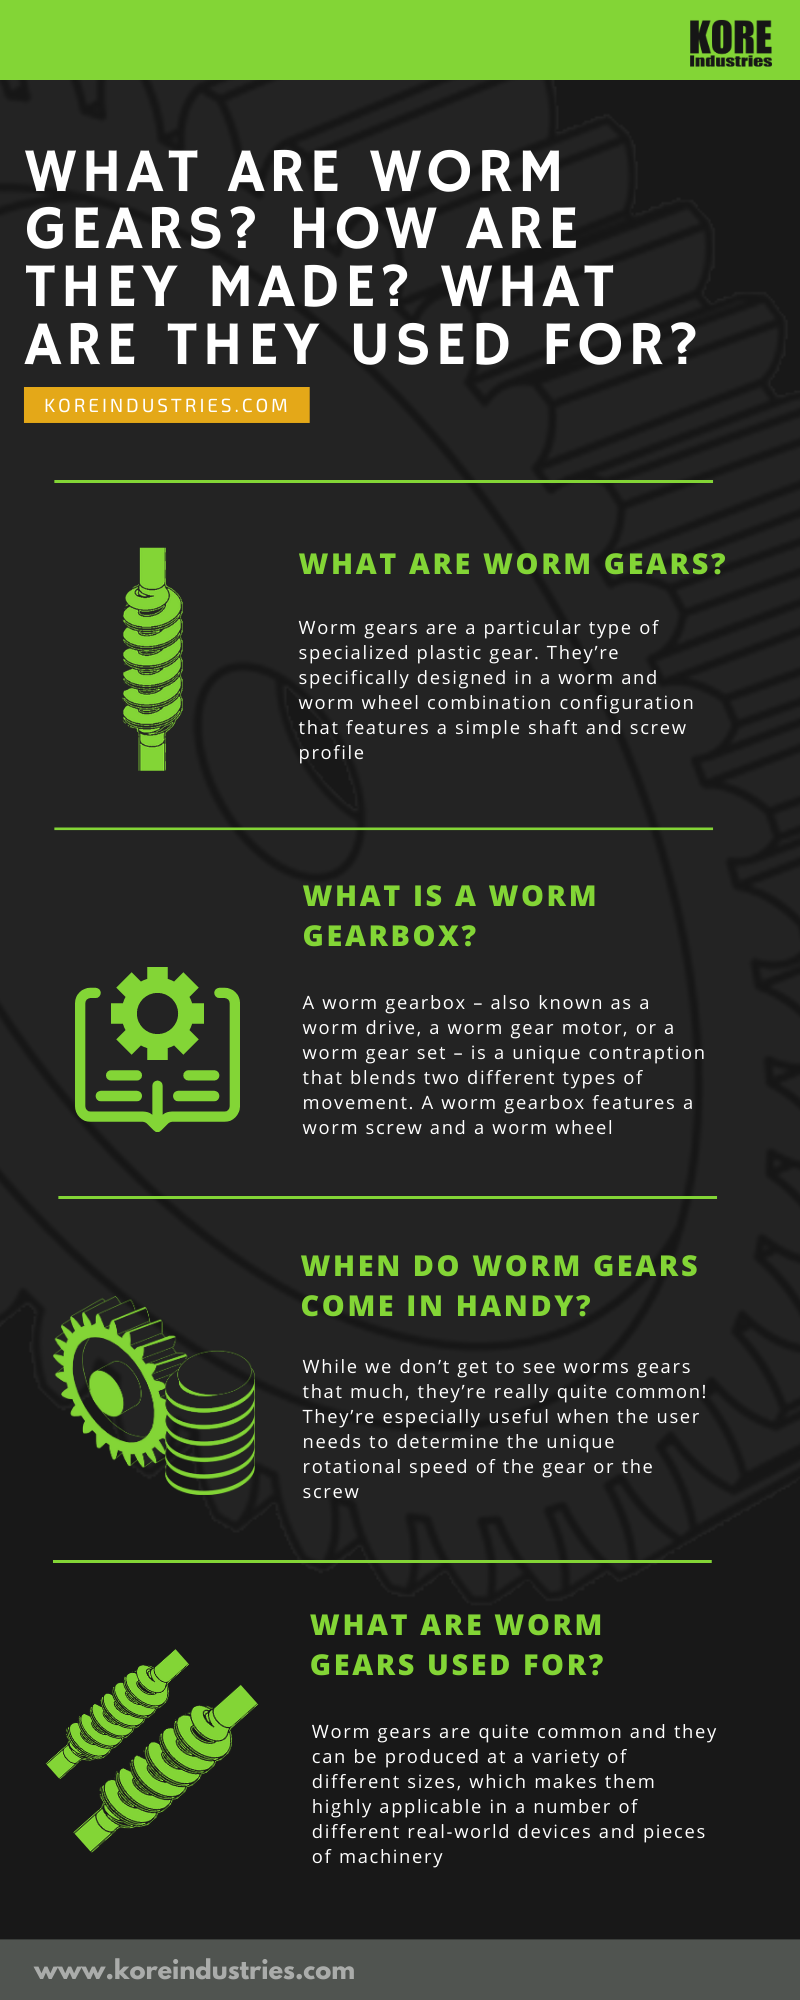 What-are-worm-gears1.png